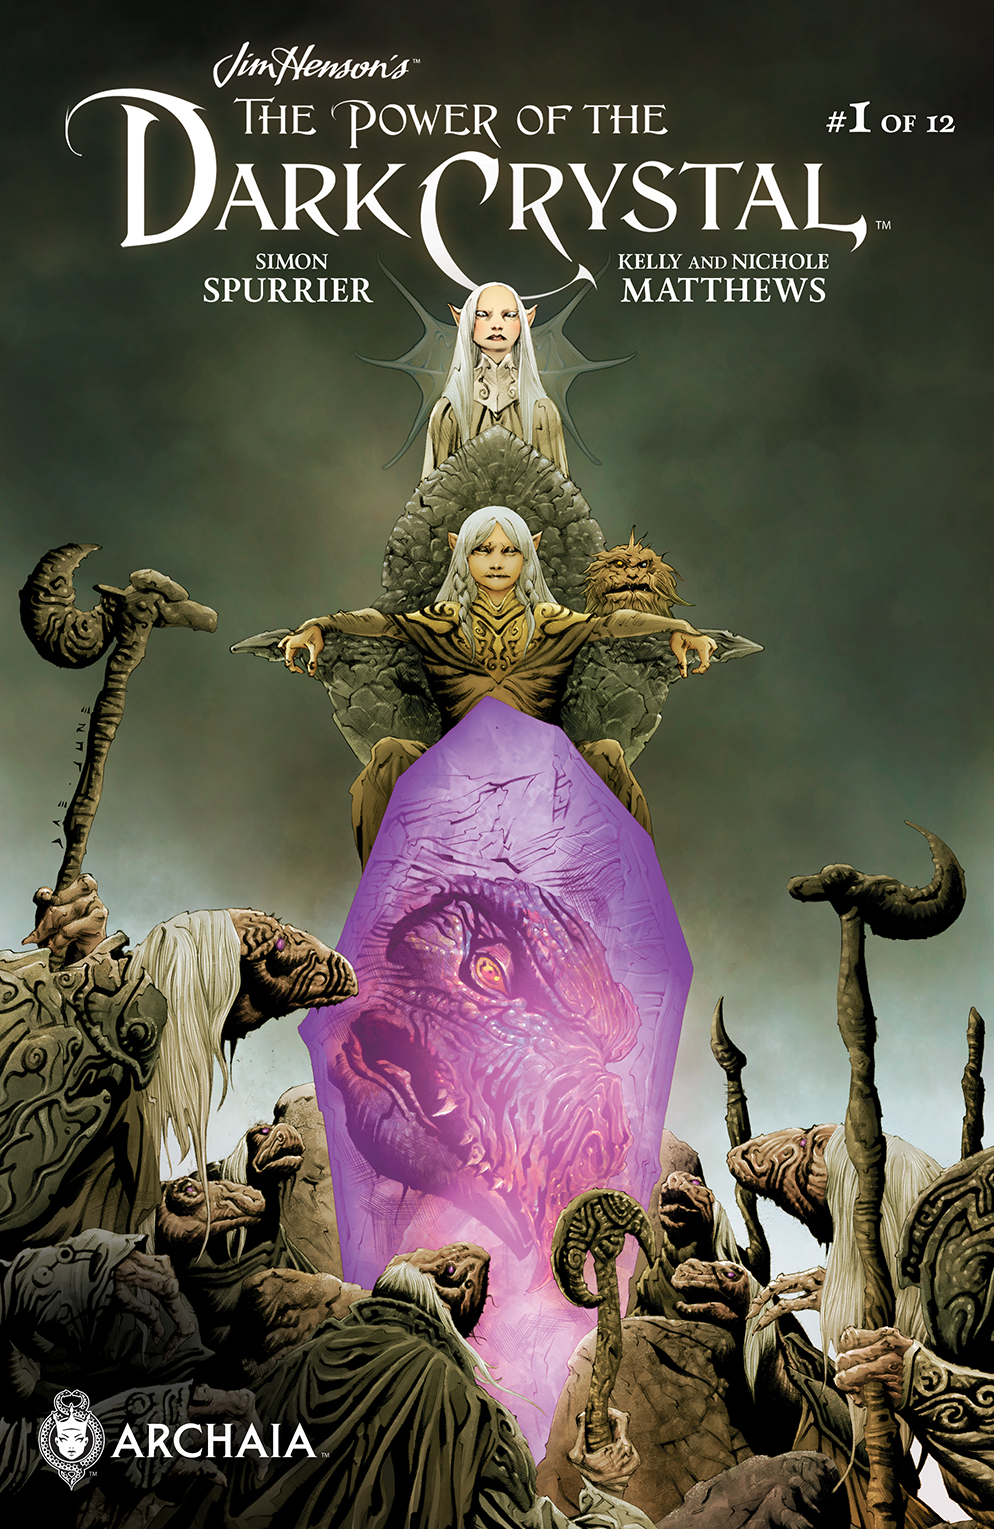 img - The Power of the Dark Crystal #1 Review